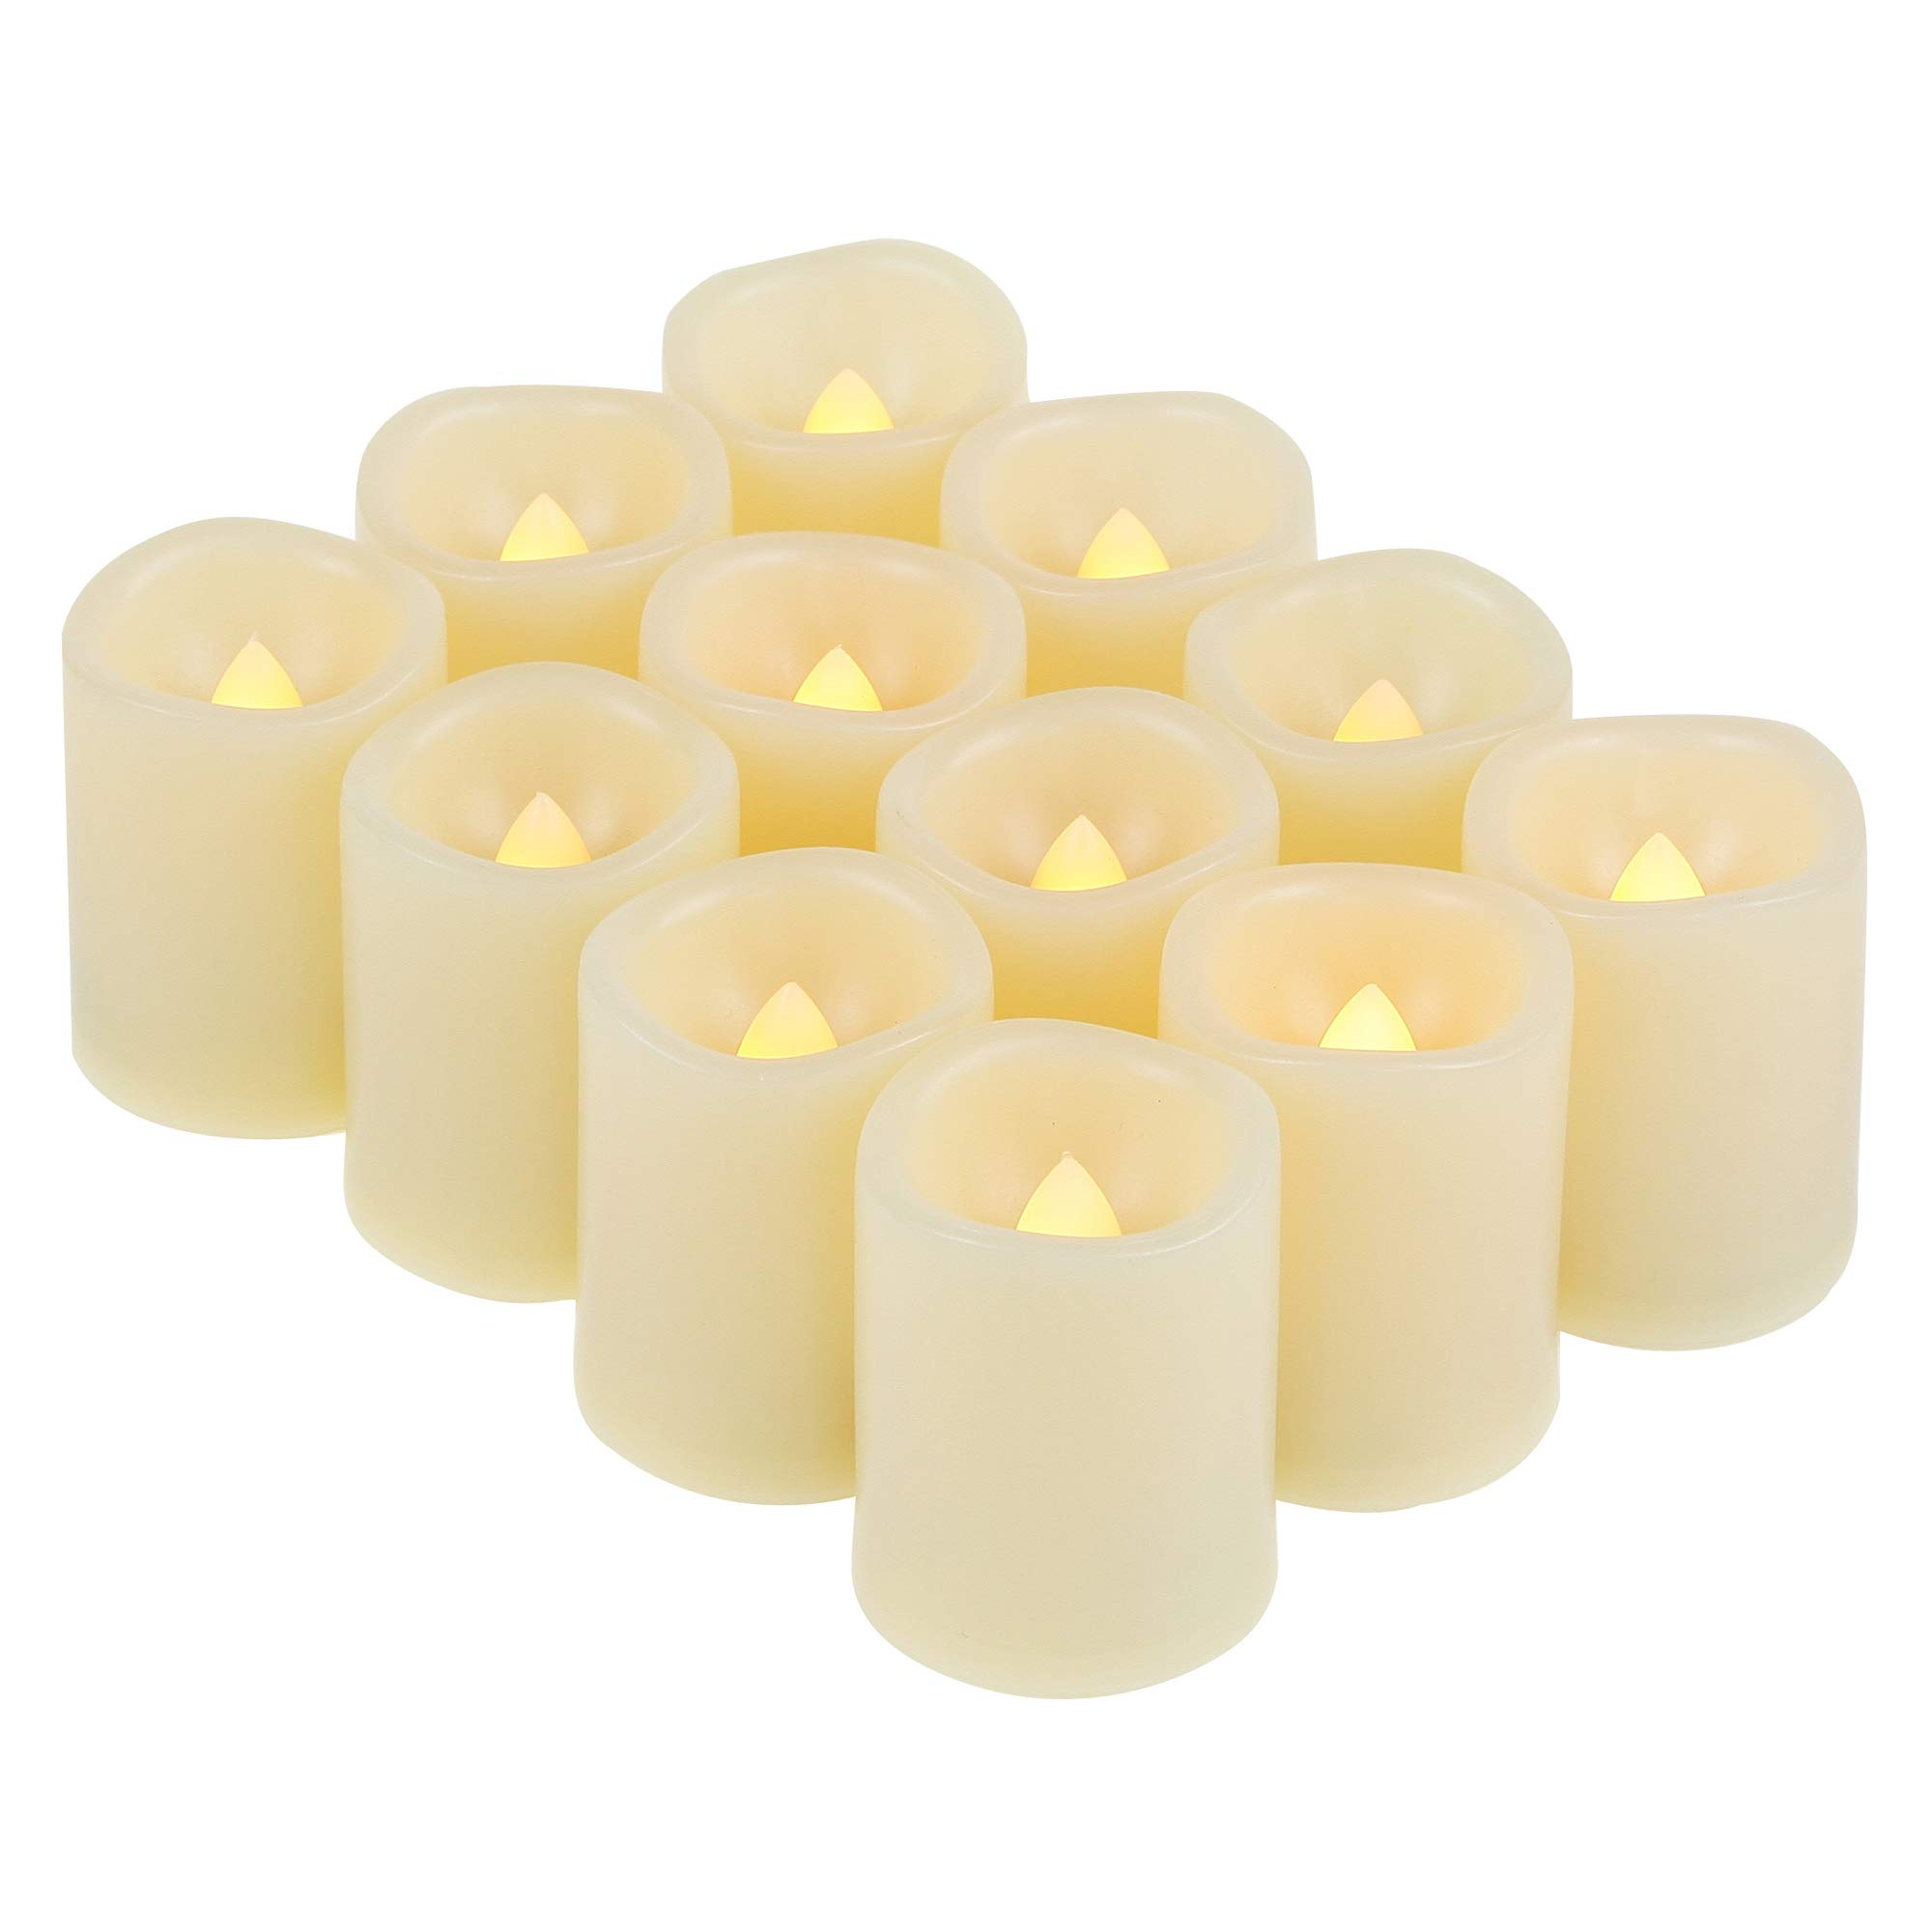 Candle Choice 12 Pieces LED Flameless Battery-operated Votives Candles with Batteries